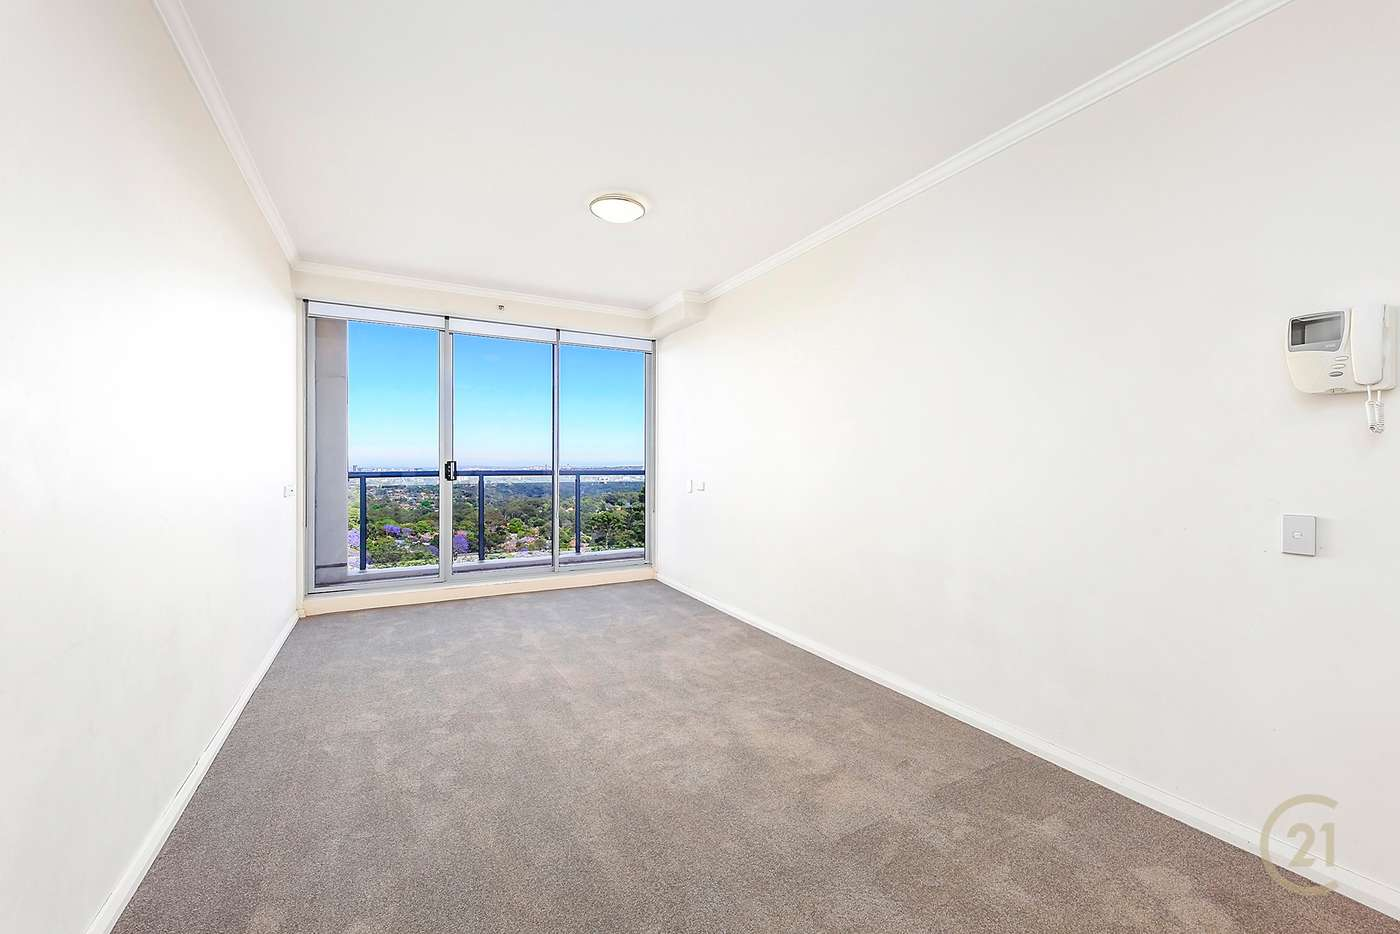 Main view of Homely apartment listing, 146/809-811 Pacific Highway, Chatswood NSW 2067